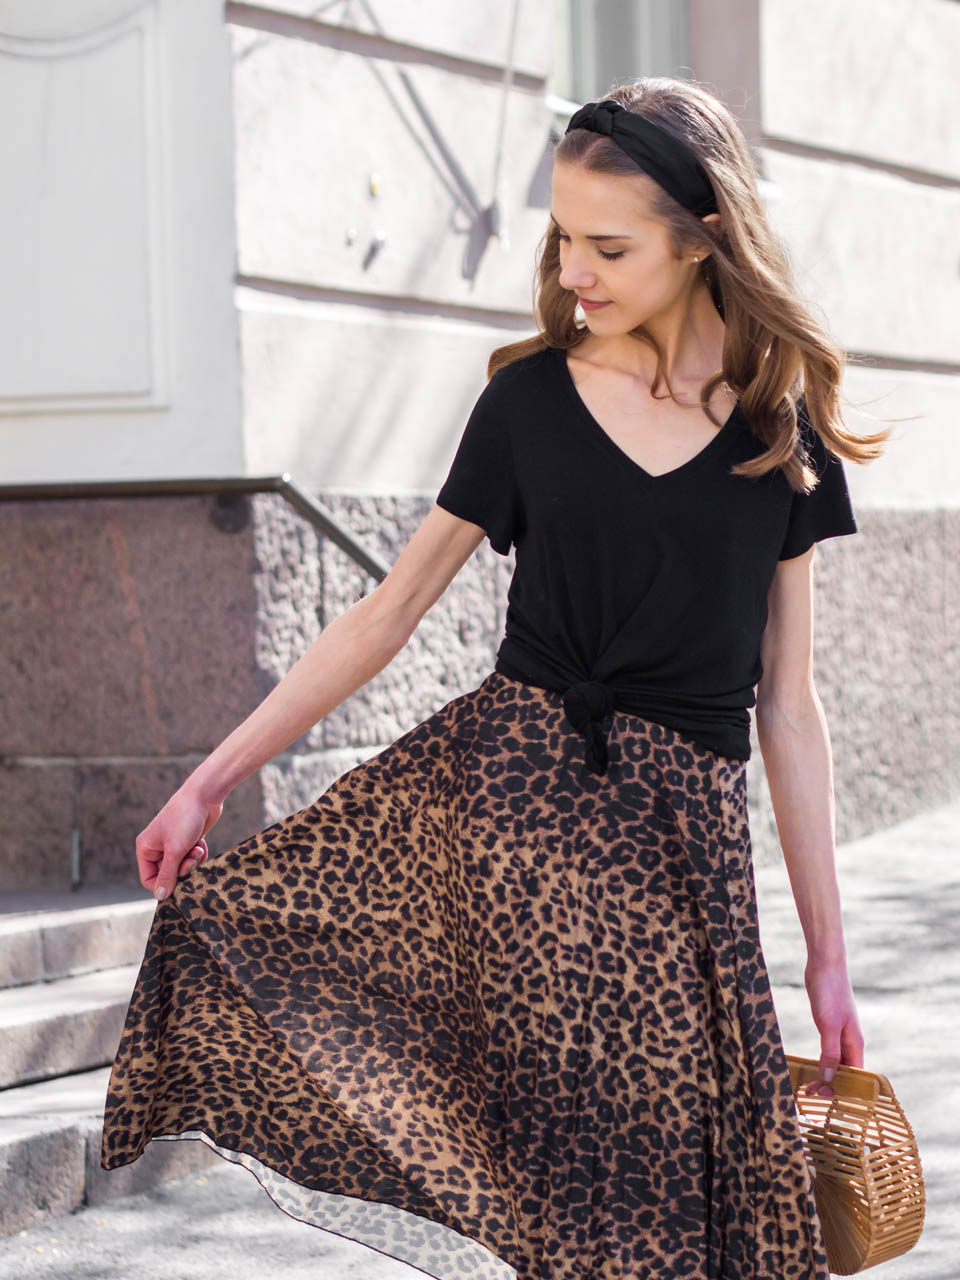 Leopard skirt and basic black t-shirt- Leopardihame ja musta t-paita